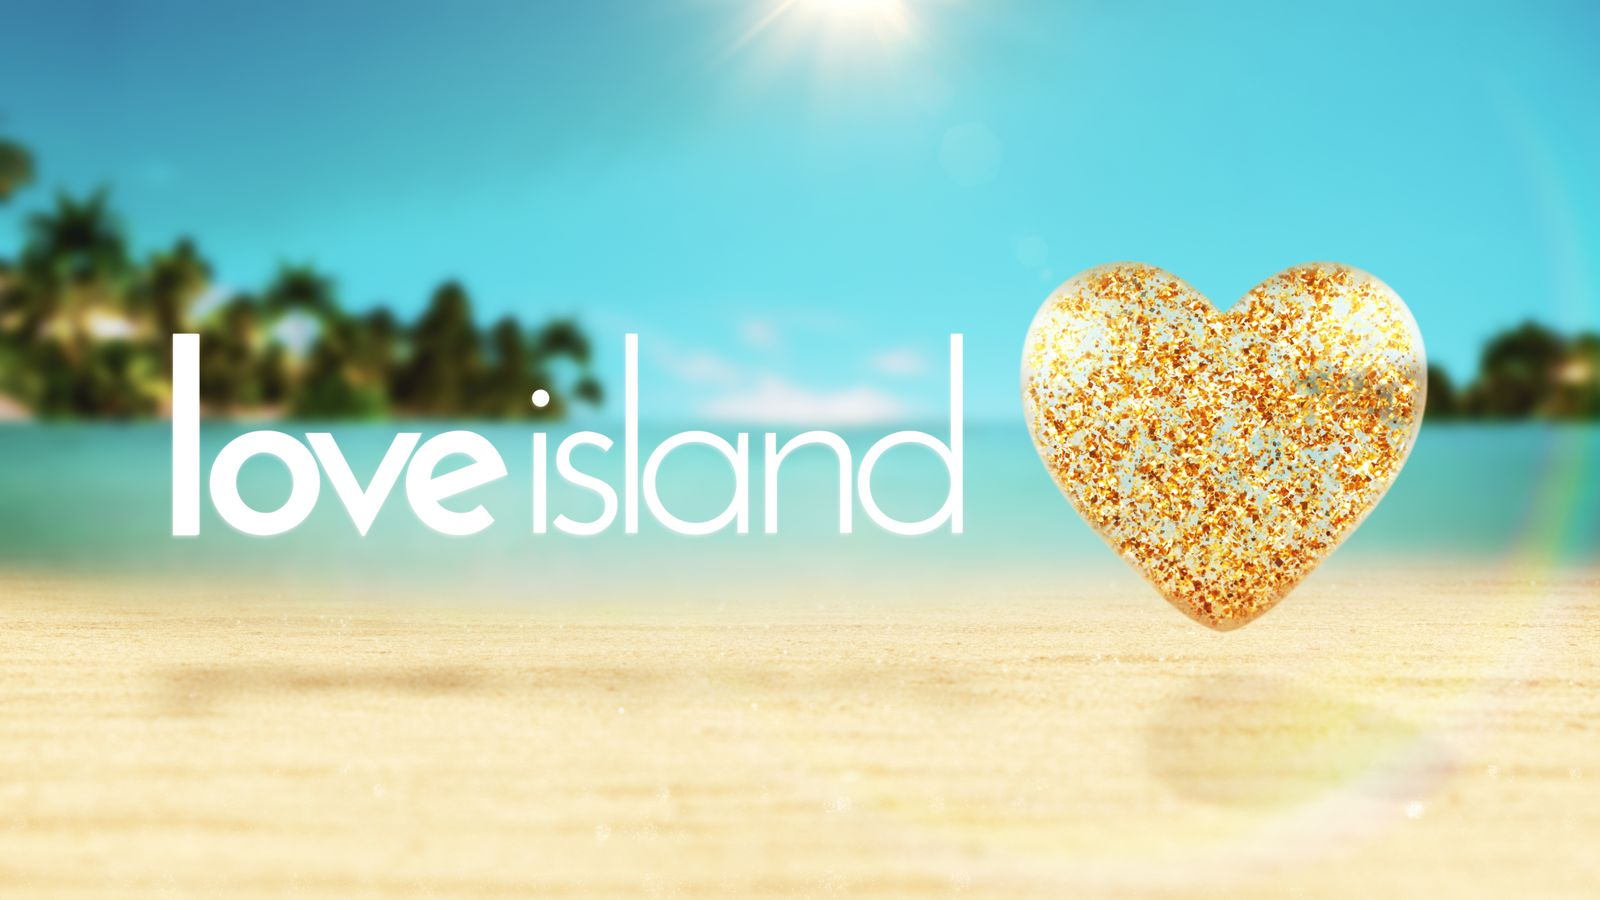 Love Island stars to be offered minimum of eight therapy sessions and social media training after show, ITV says